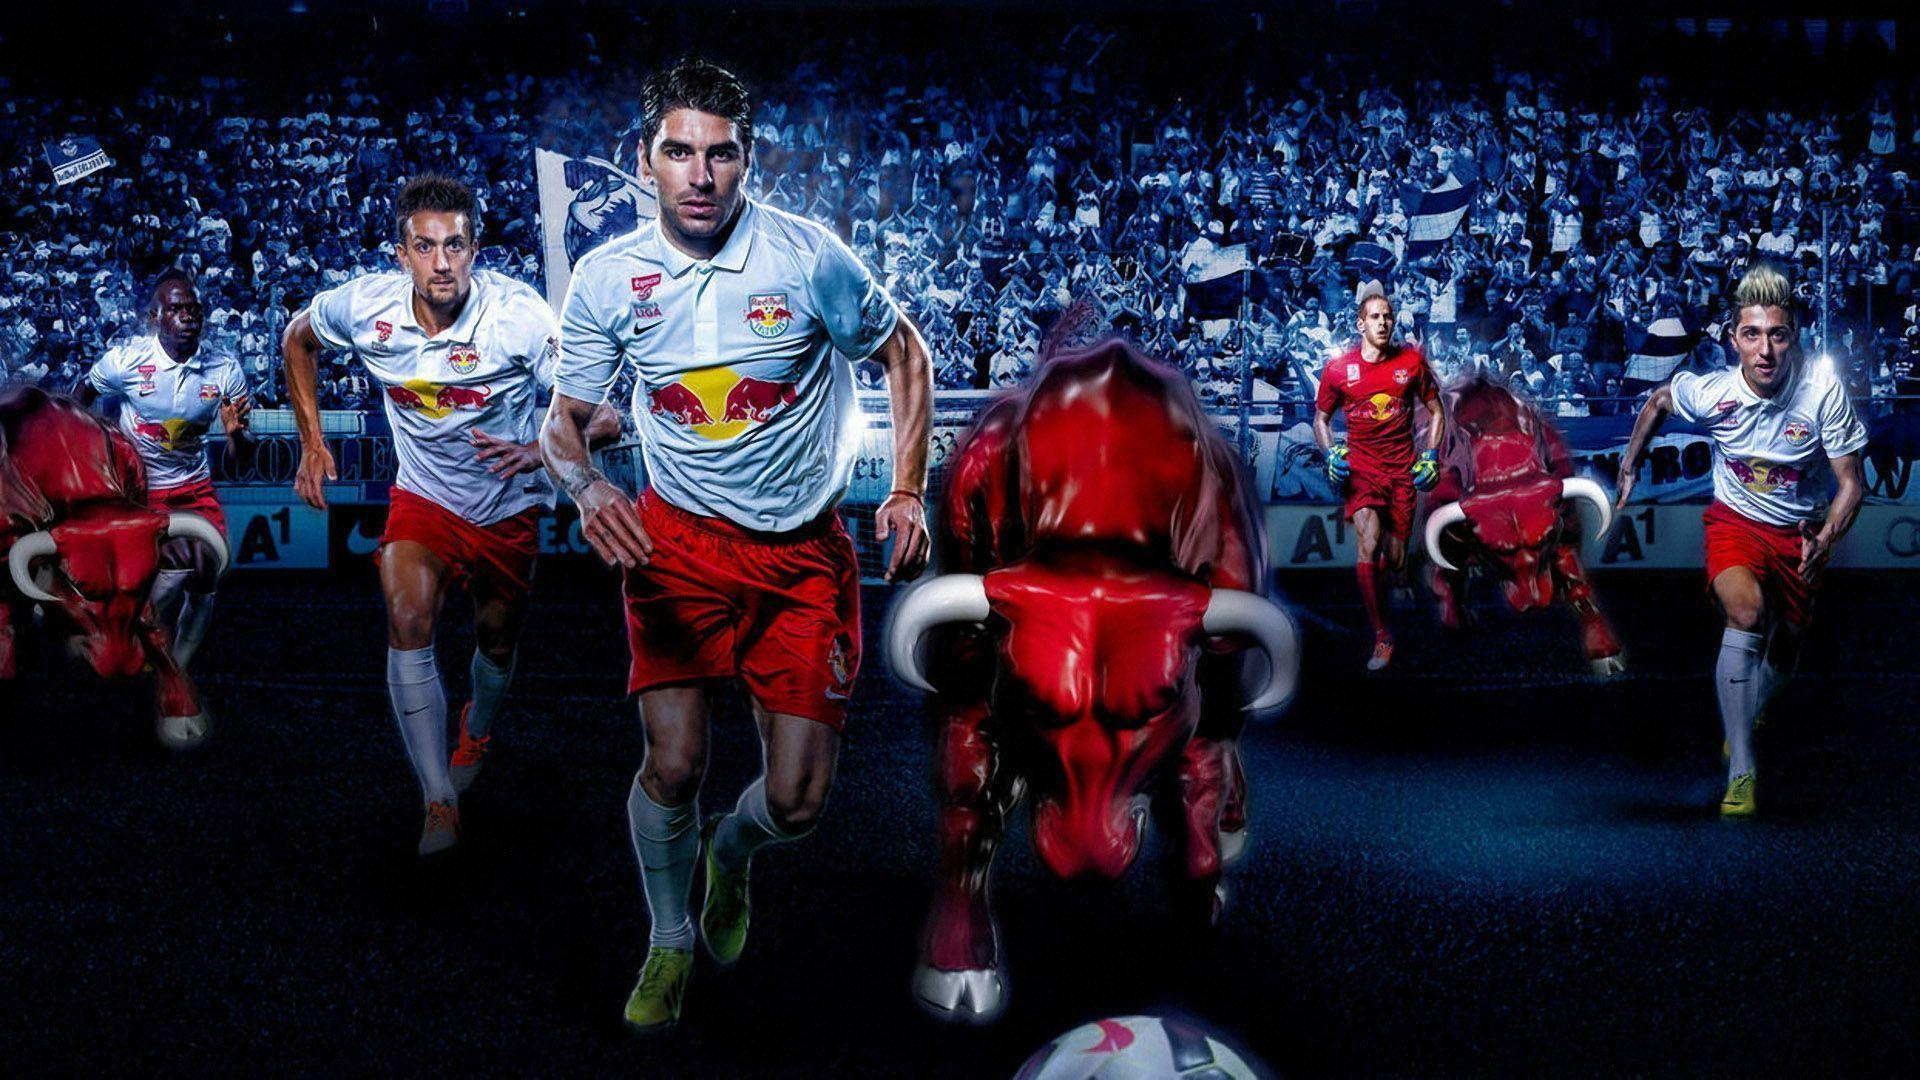 Cool soccer wallpapers hd 2014